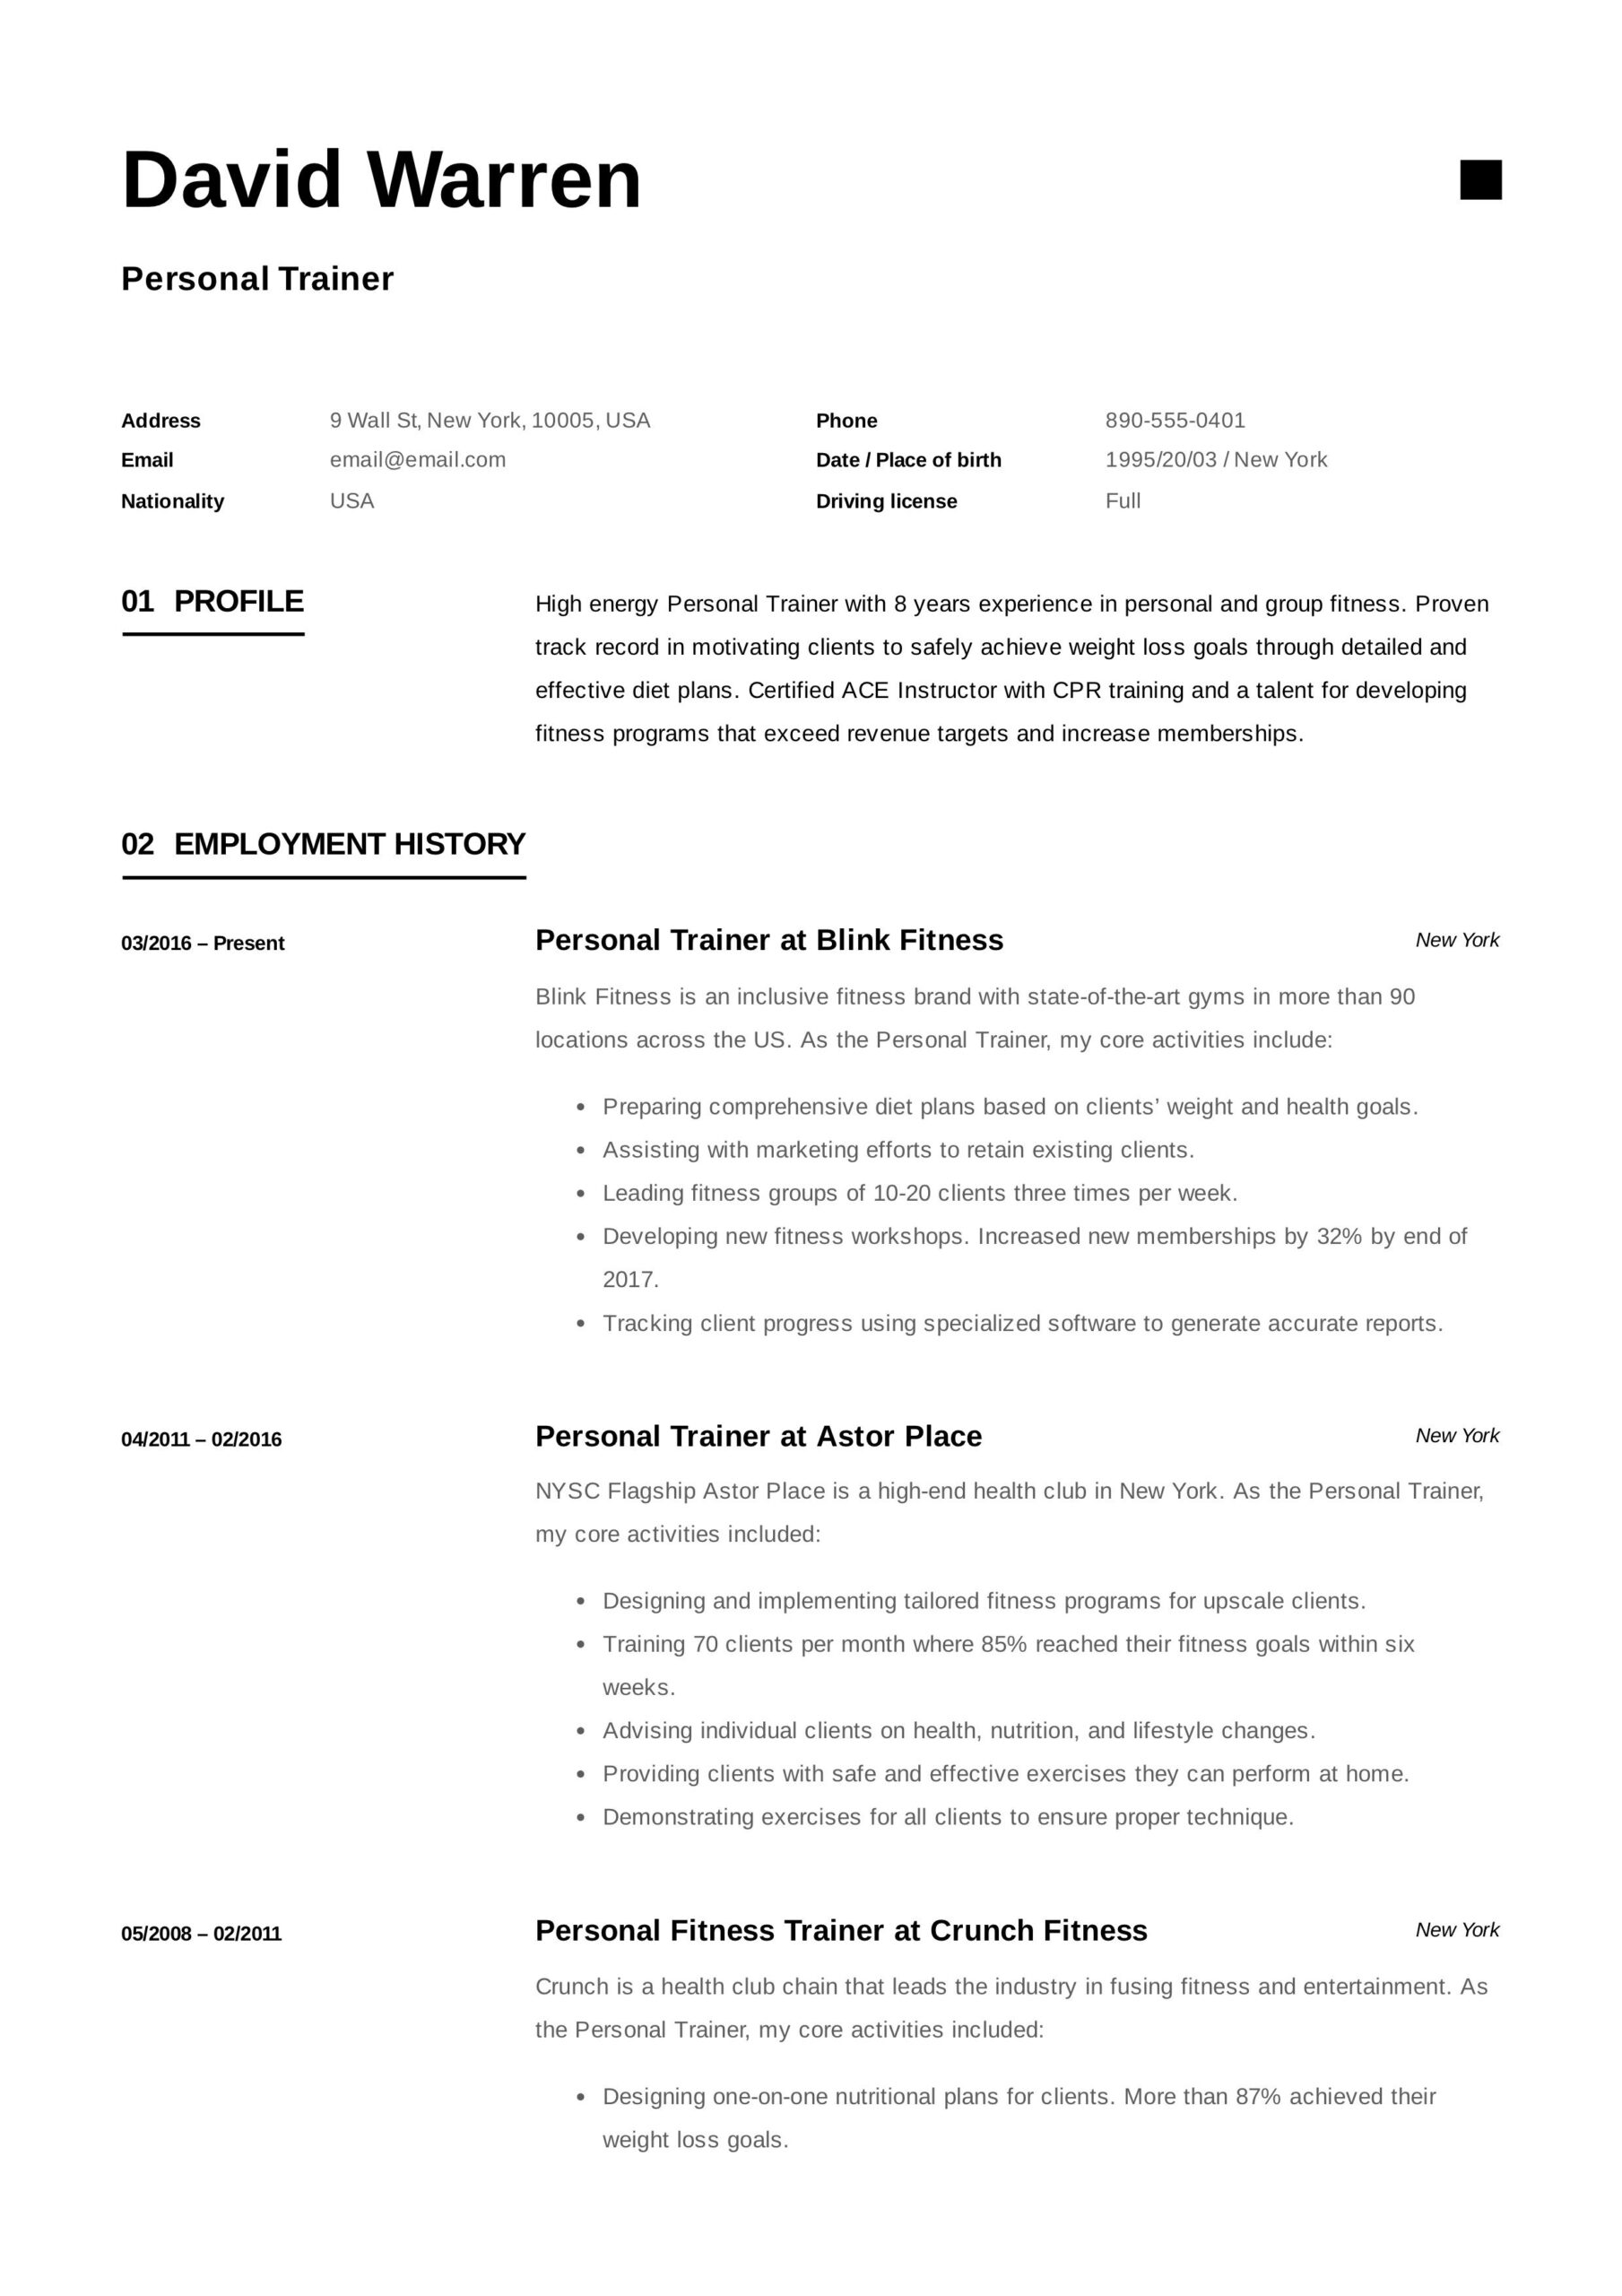 personal trainer resume job examples format uber driver fantastic templates highly Resume Personal Trainer Resume Format